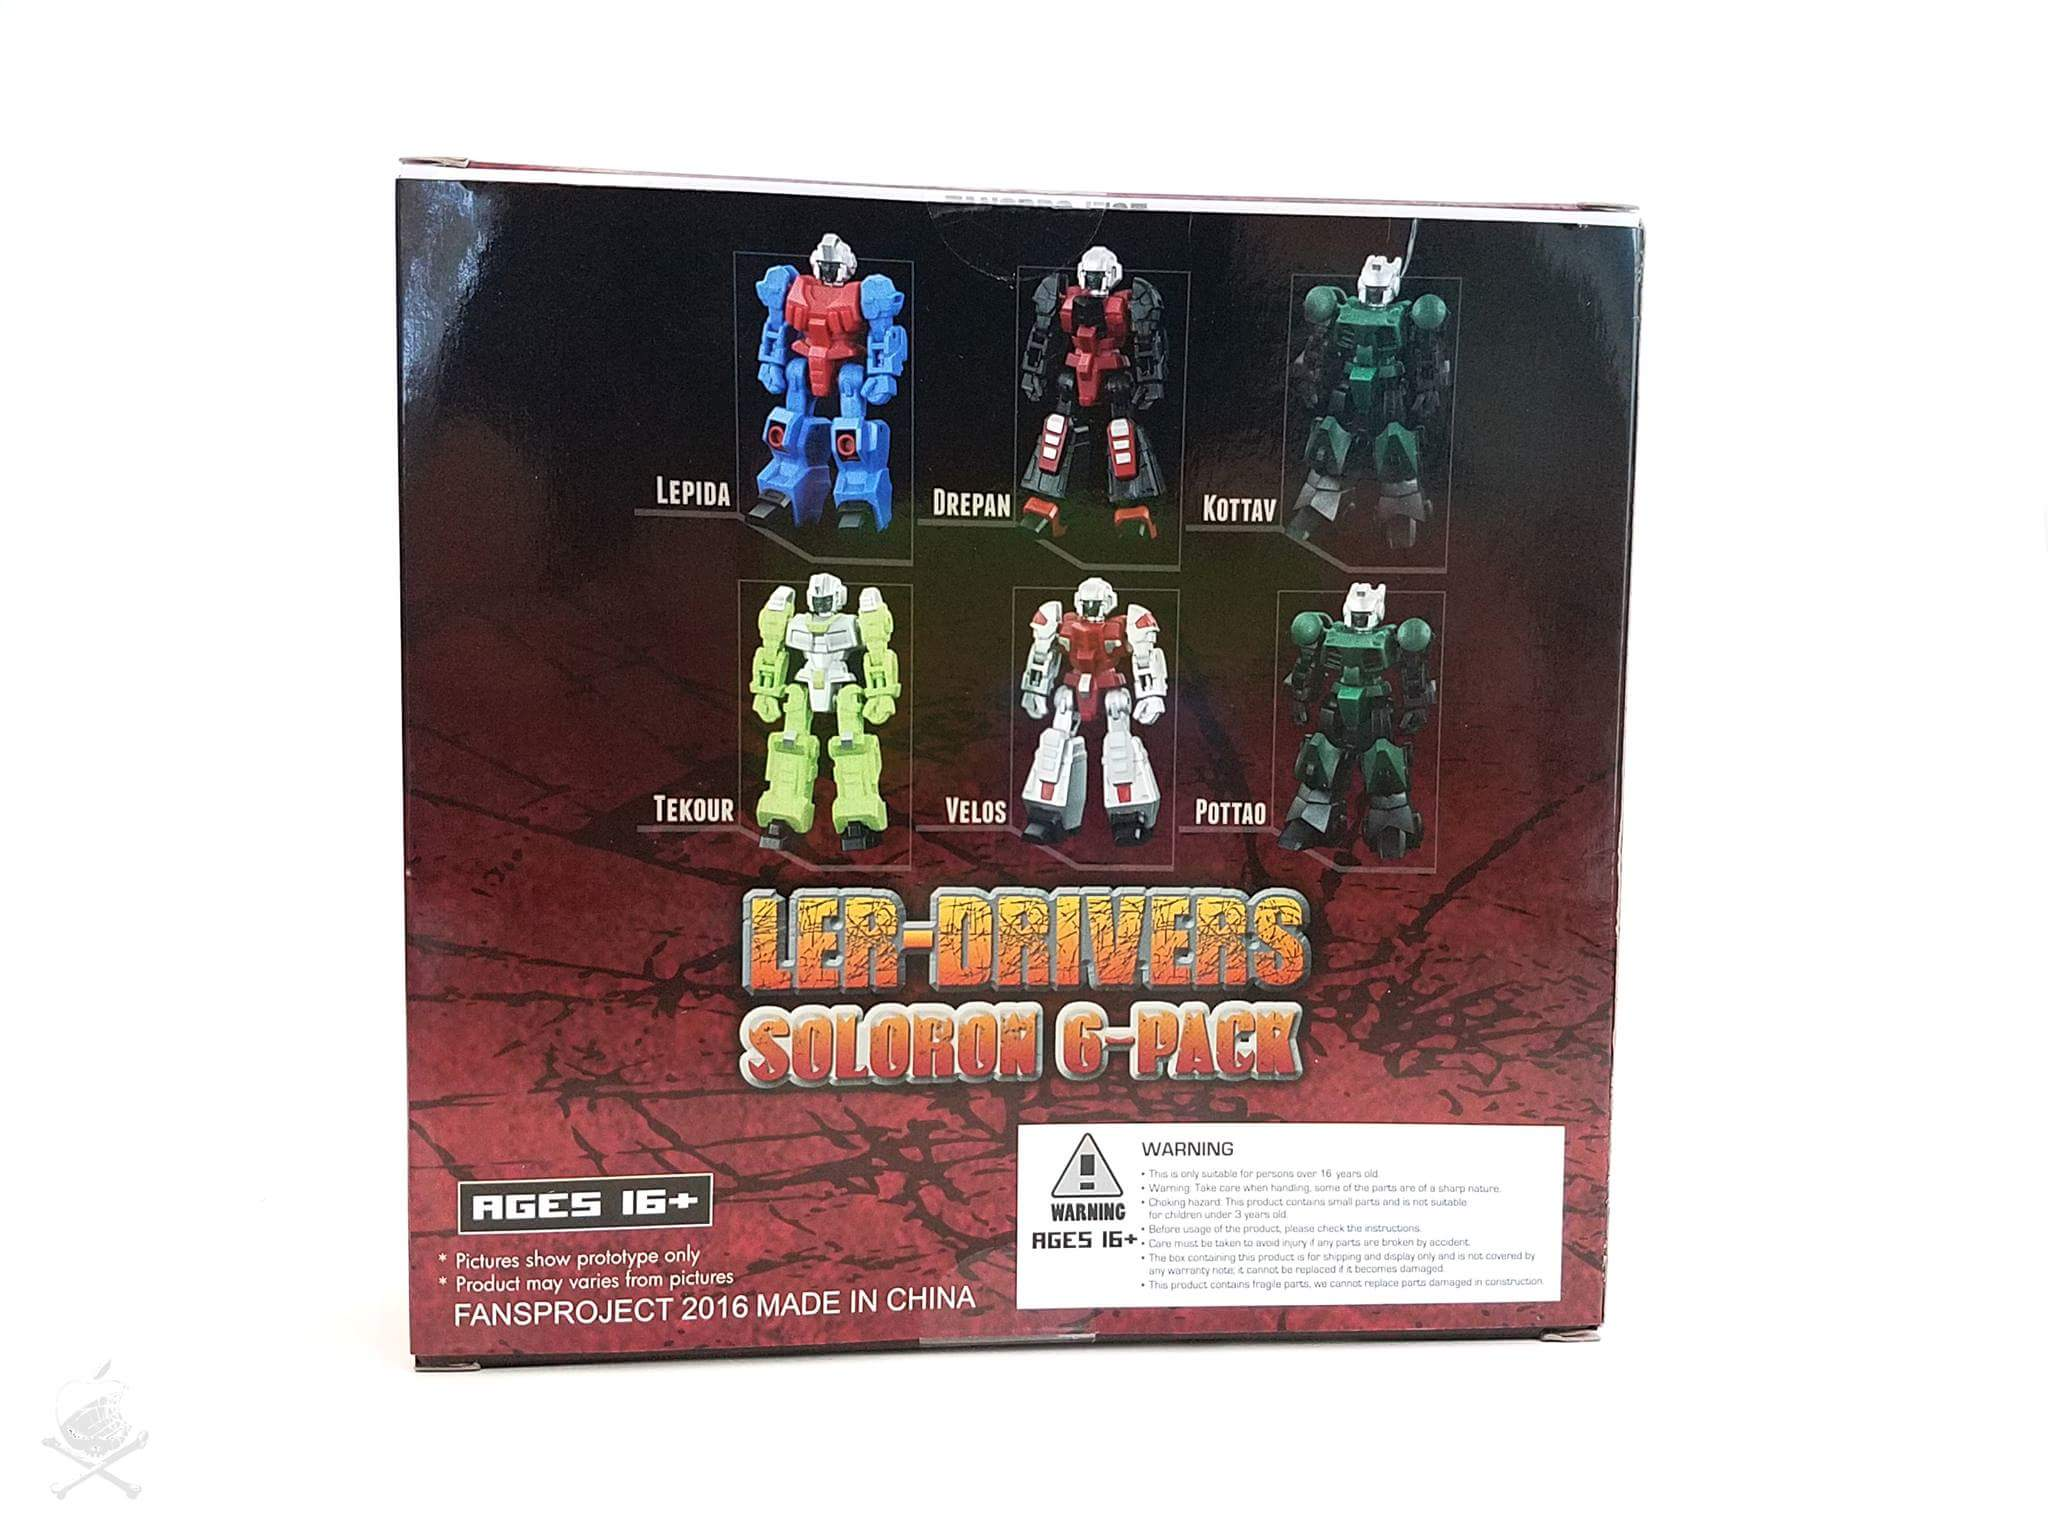 [FansProject] Produit Tiers - Jouets LER (Lost Exo Realm) - aka Dinobots - Page 3 YaFzZosW